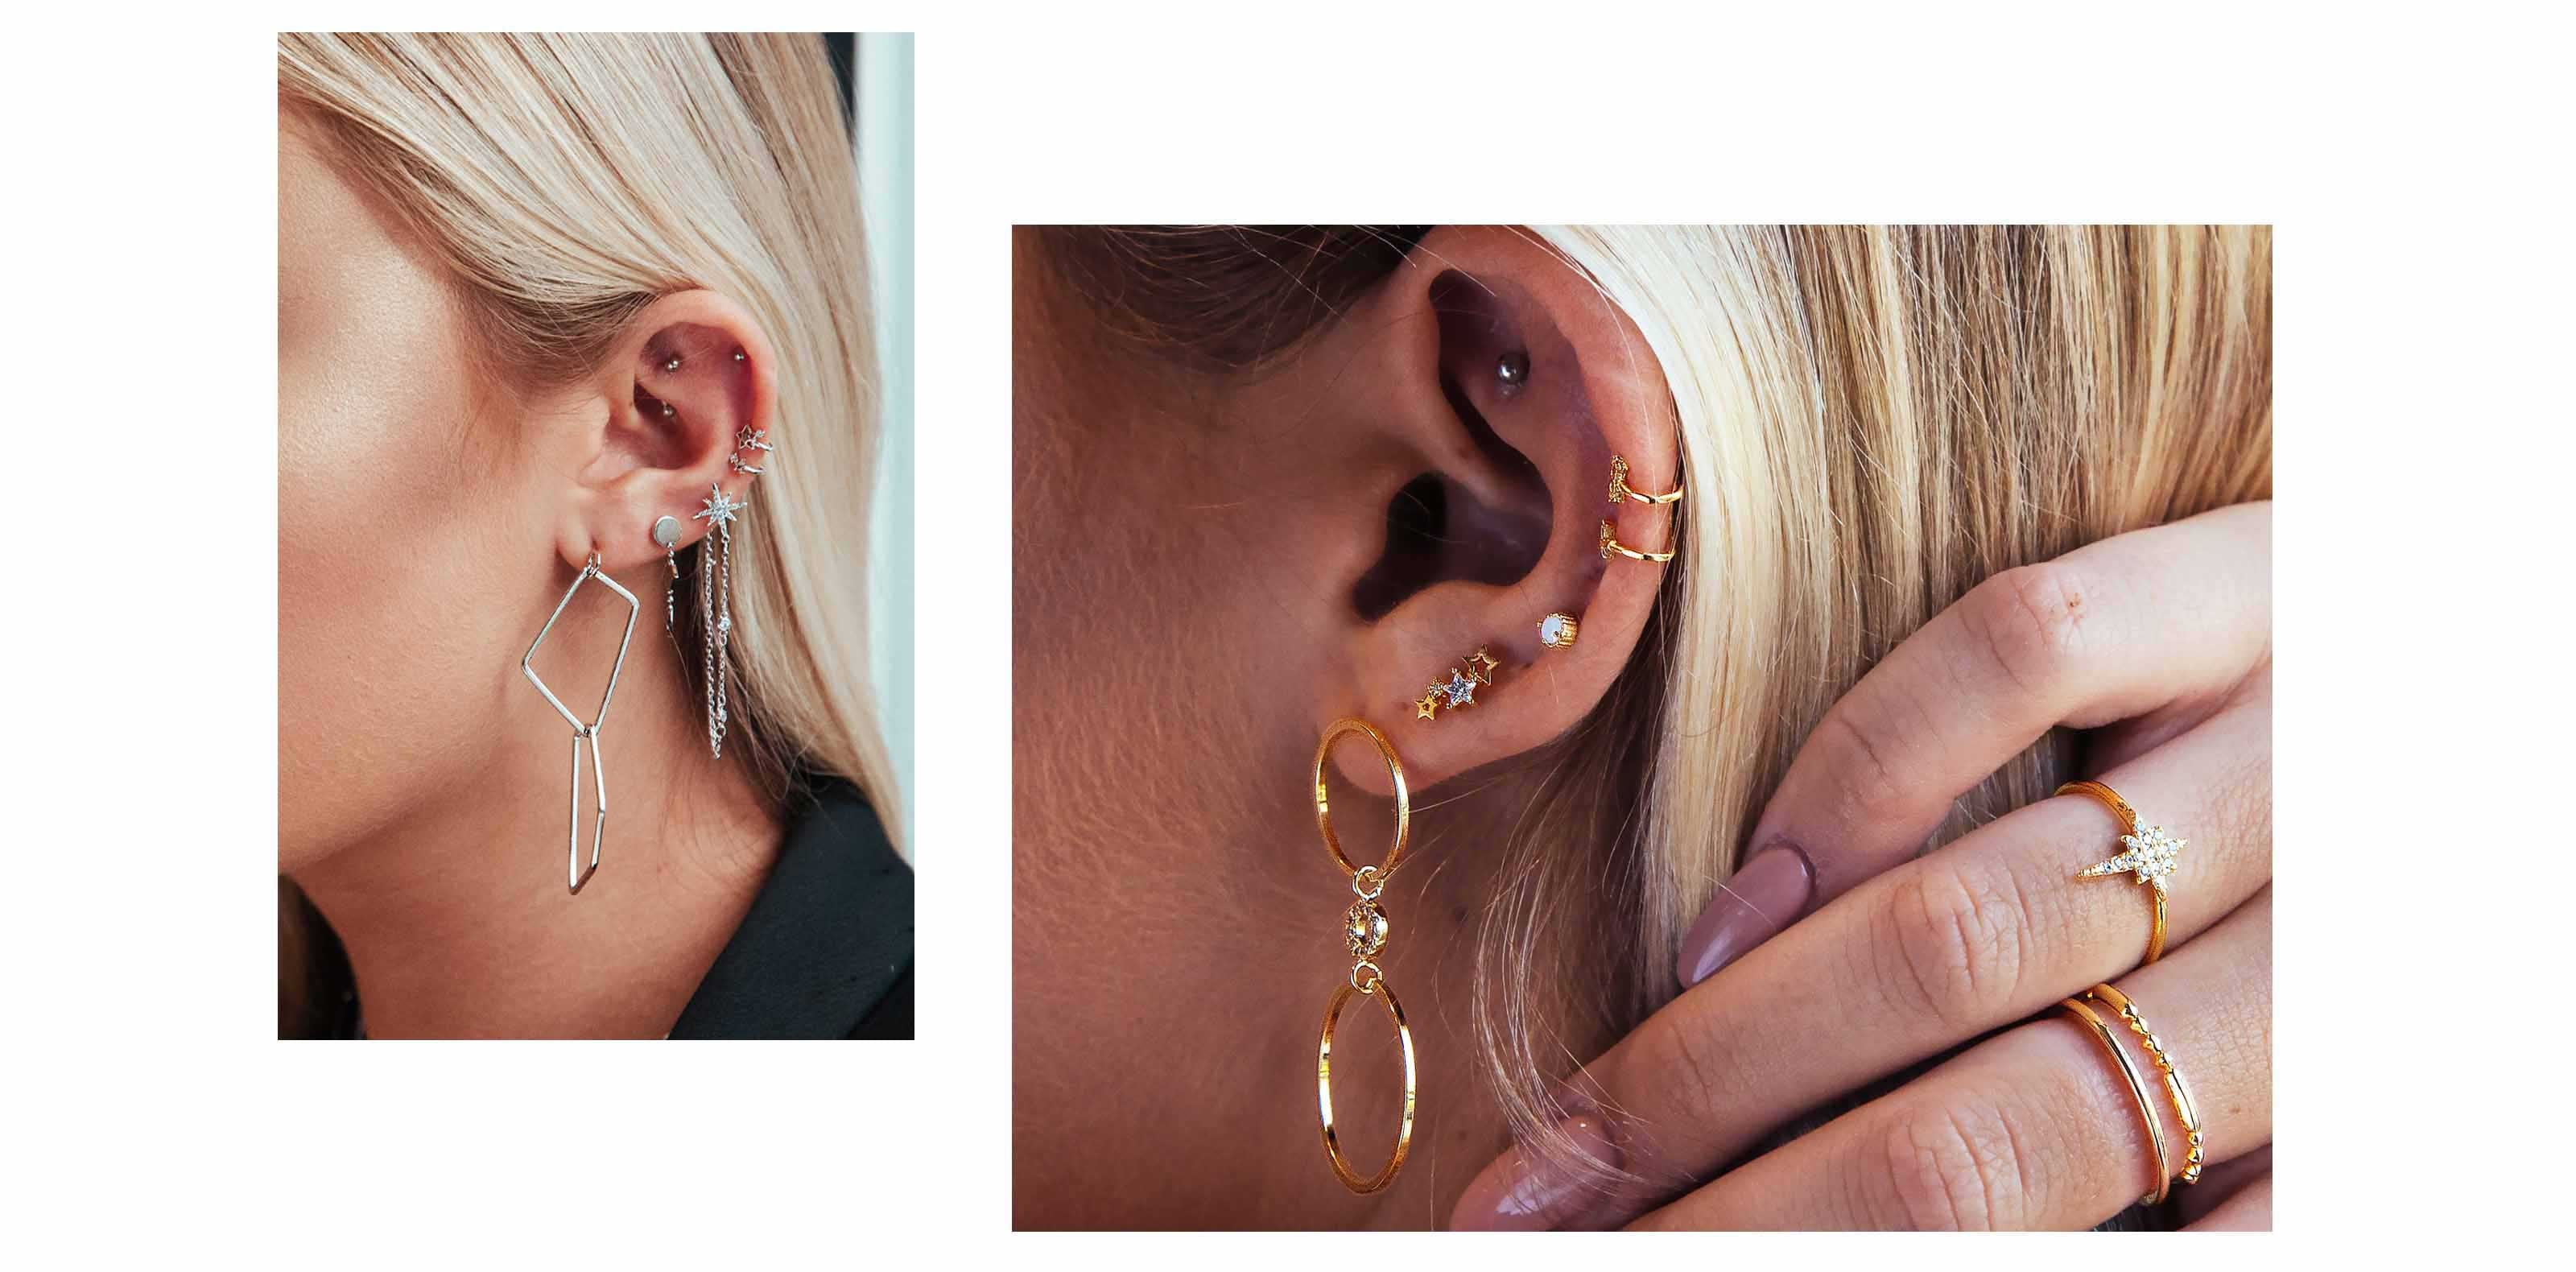 pinch & fold - curated ear piercings